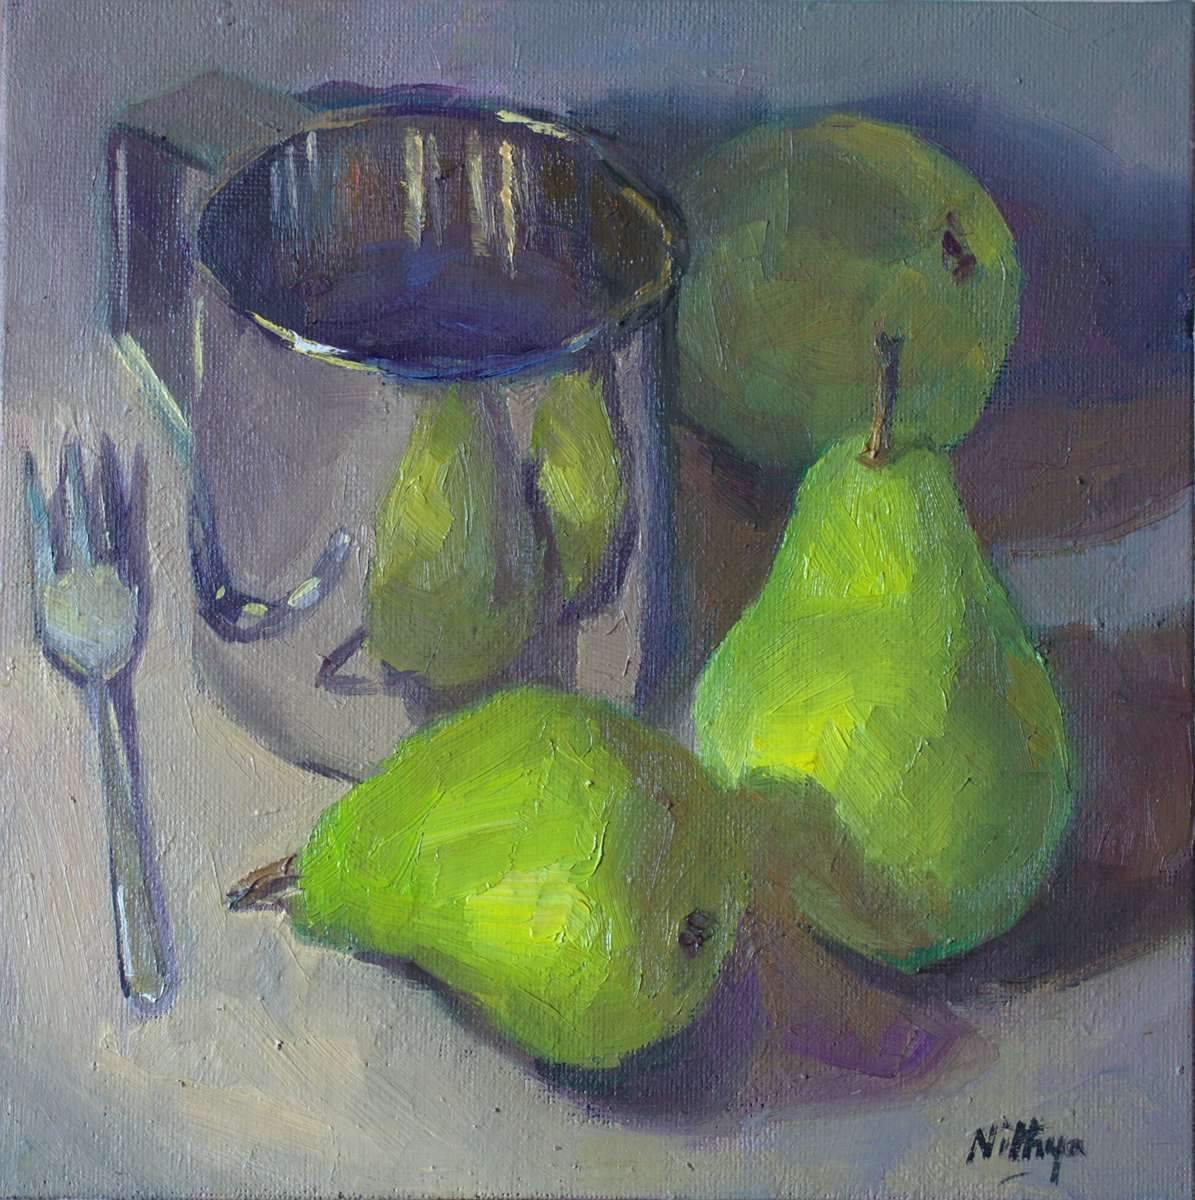 Origial Oil Painting - Pear reflections on Silver